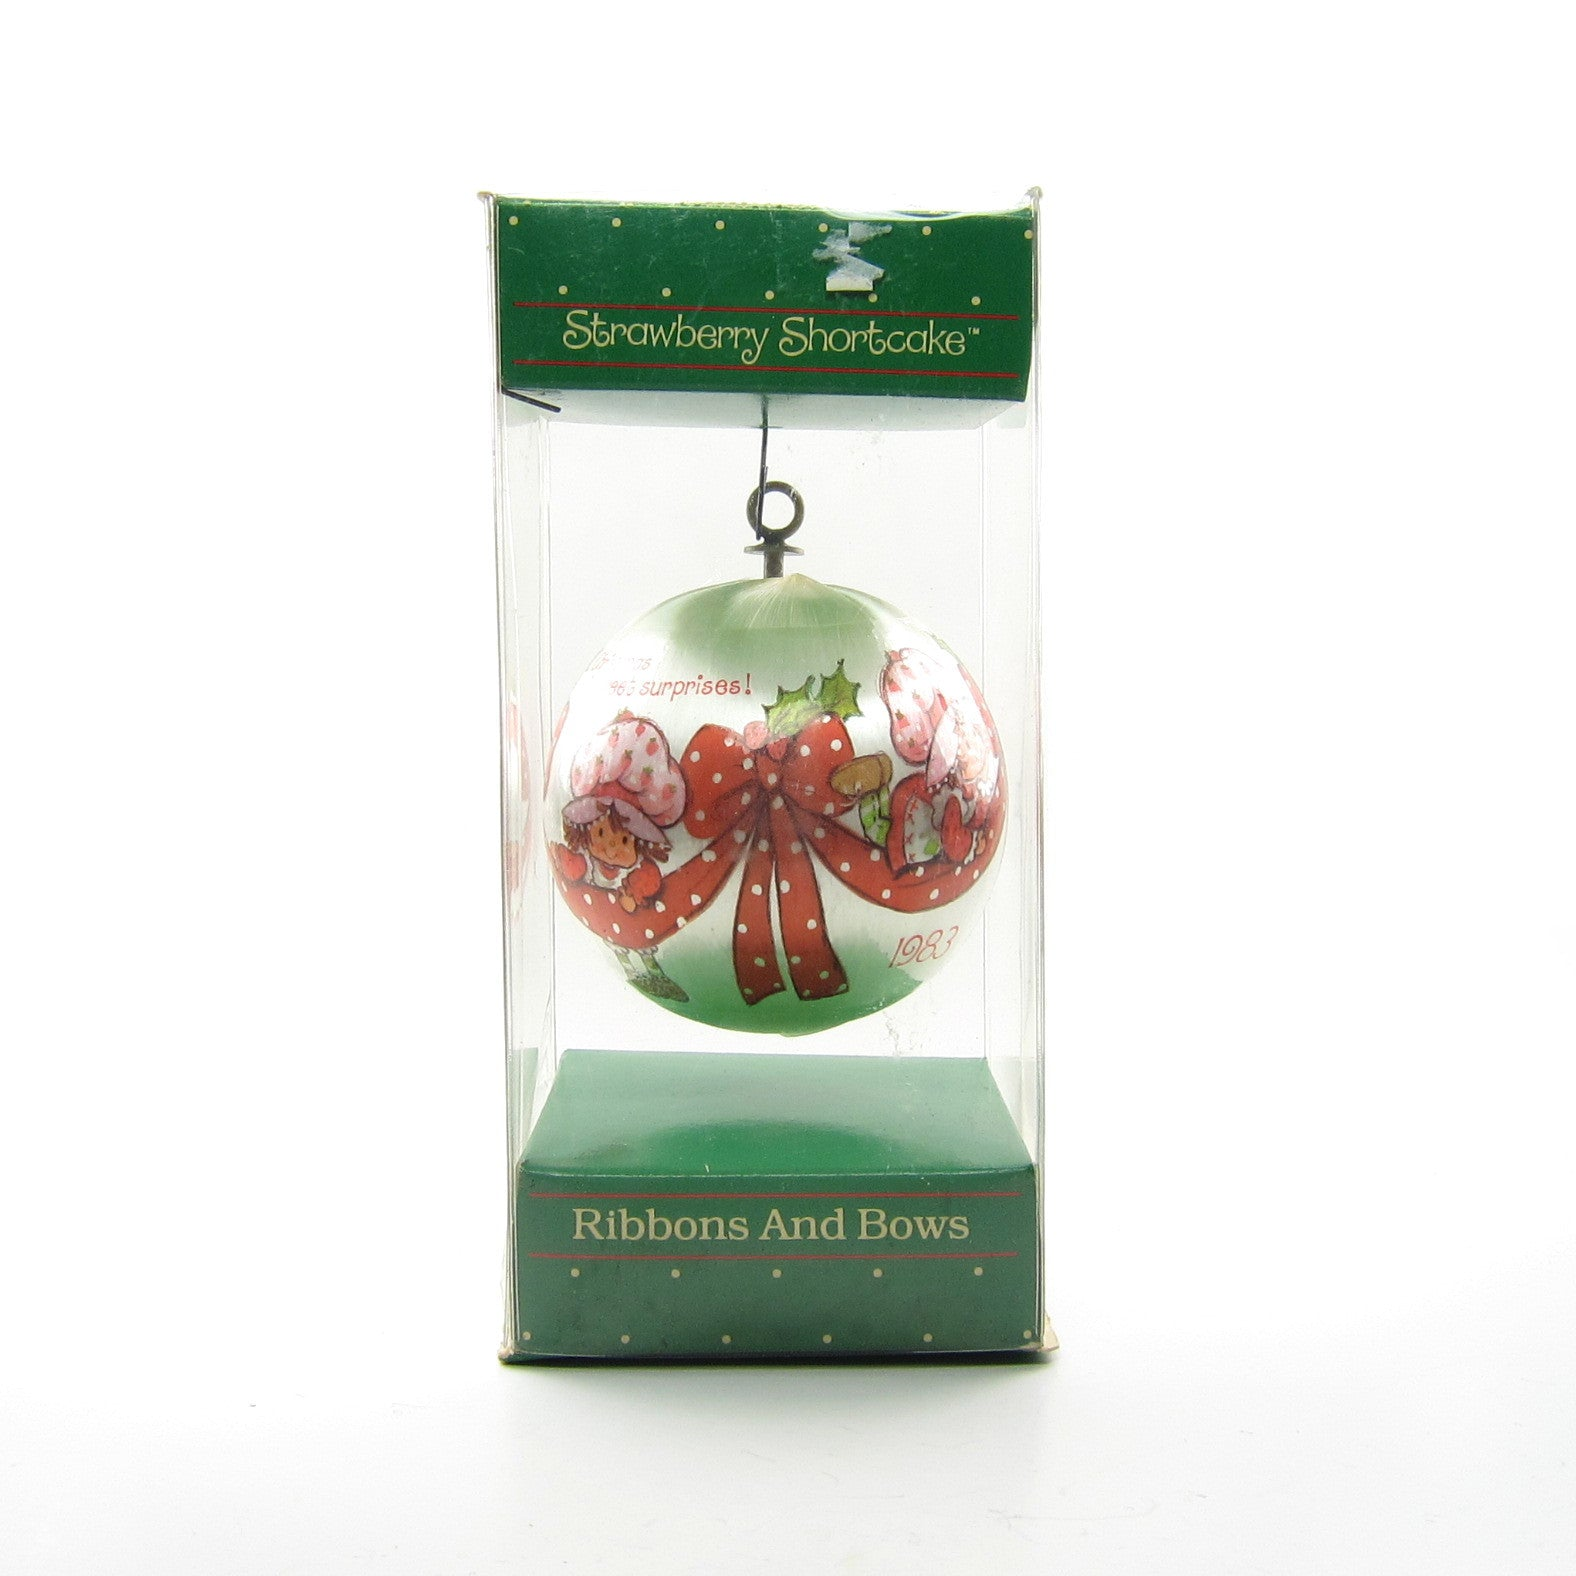 Ribbons and Bows Strawberry Shortcake Christmas ornament